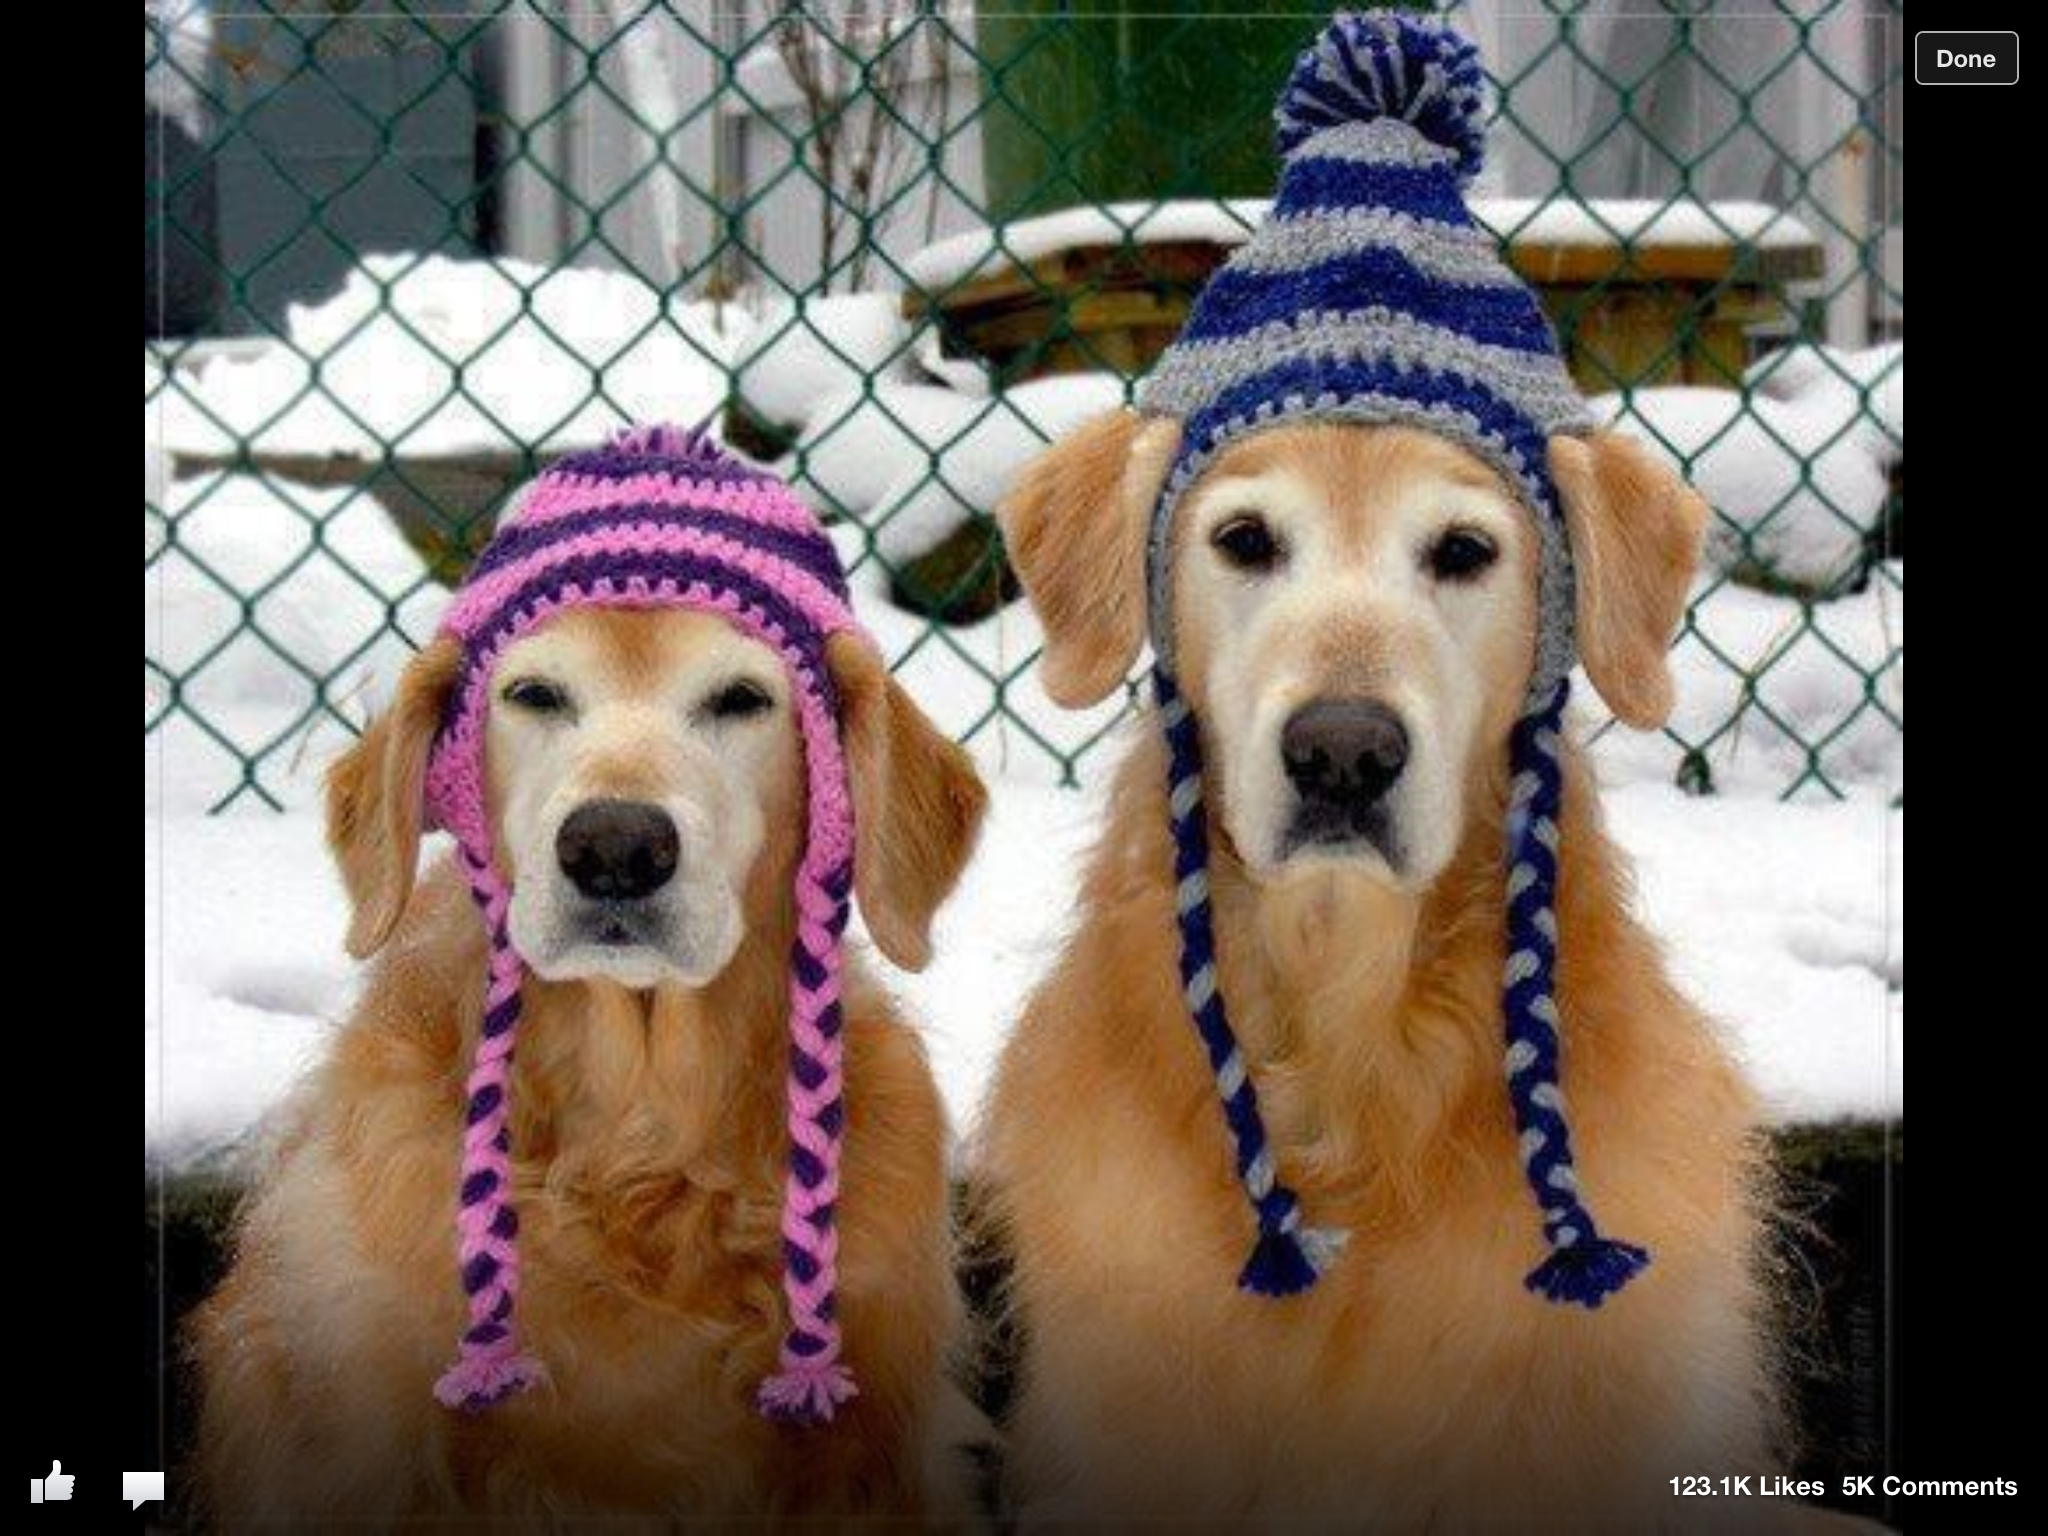 Pin by Liz Norris on Critters! Crochet dog hat, Dog hat